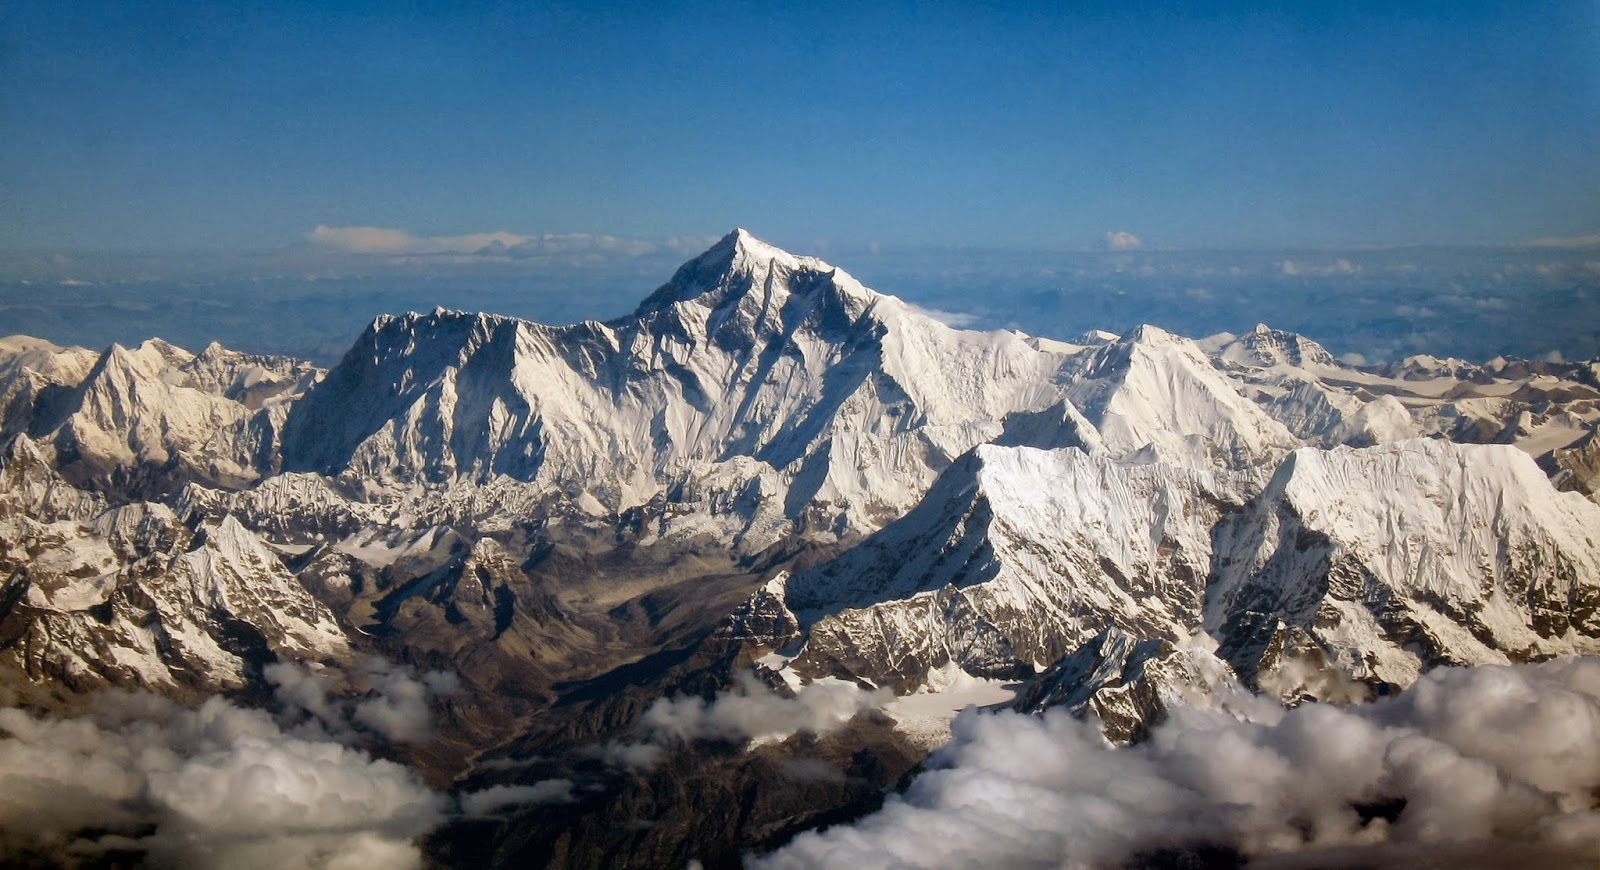 http://en.wikipedia.org/wiki/Mount_Everest